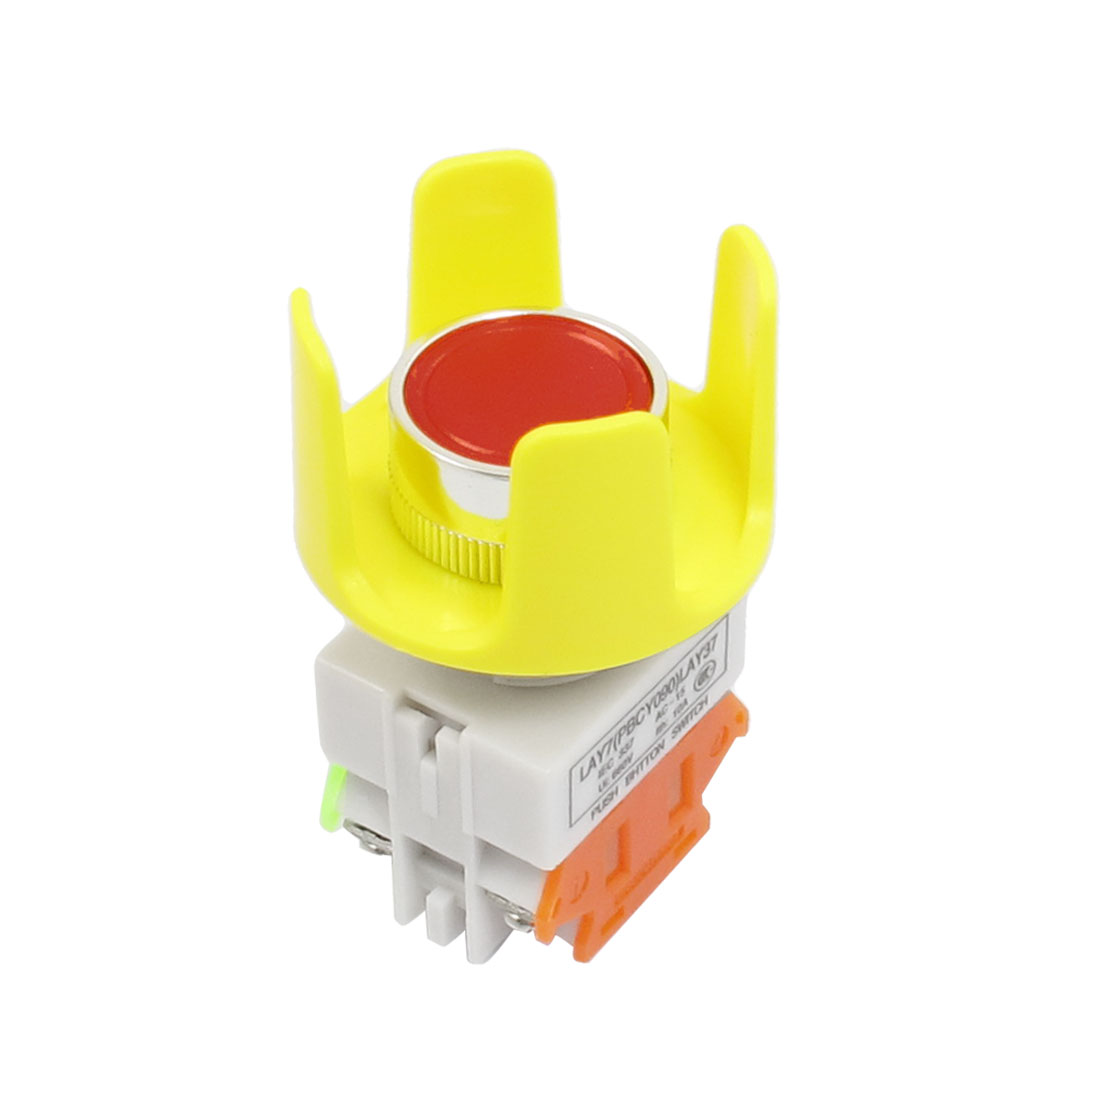 Momentary Contact 4 Screw Terminals Red Push Button Switch Ui 660V Ith 10A